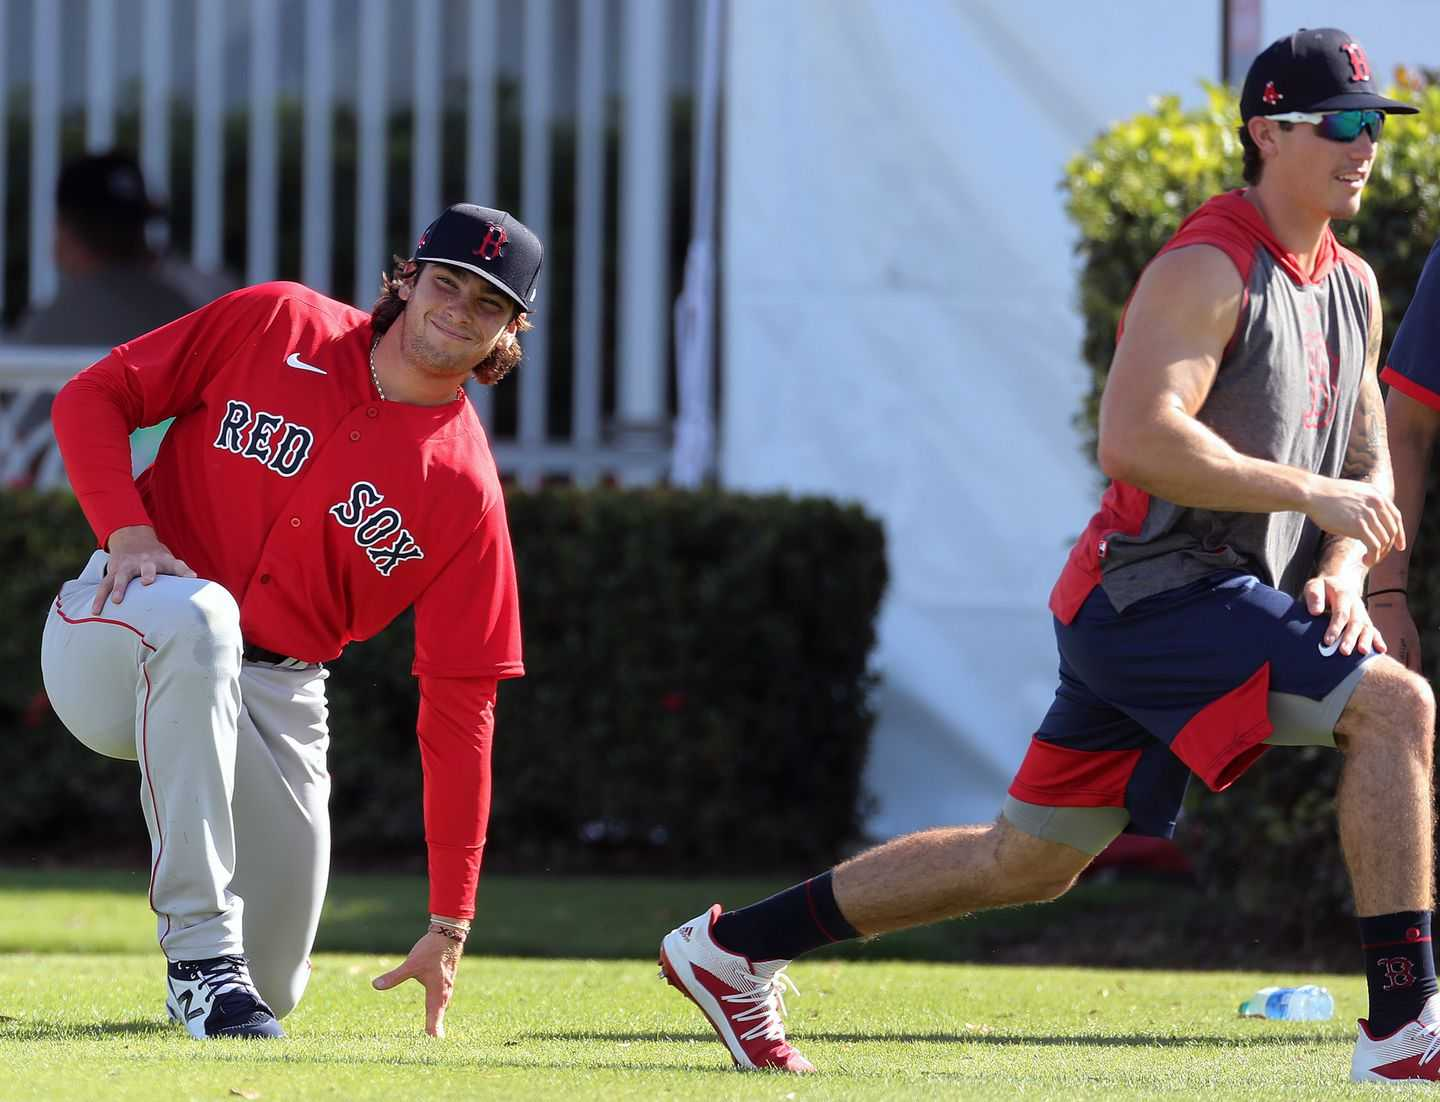 A Pair of Red Sox on Team USA